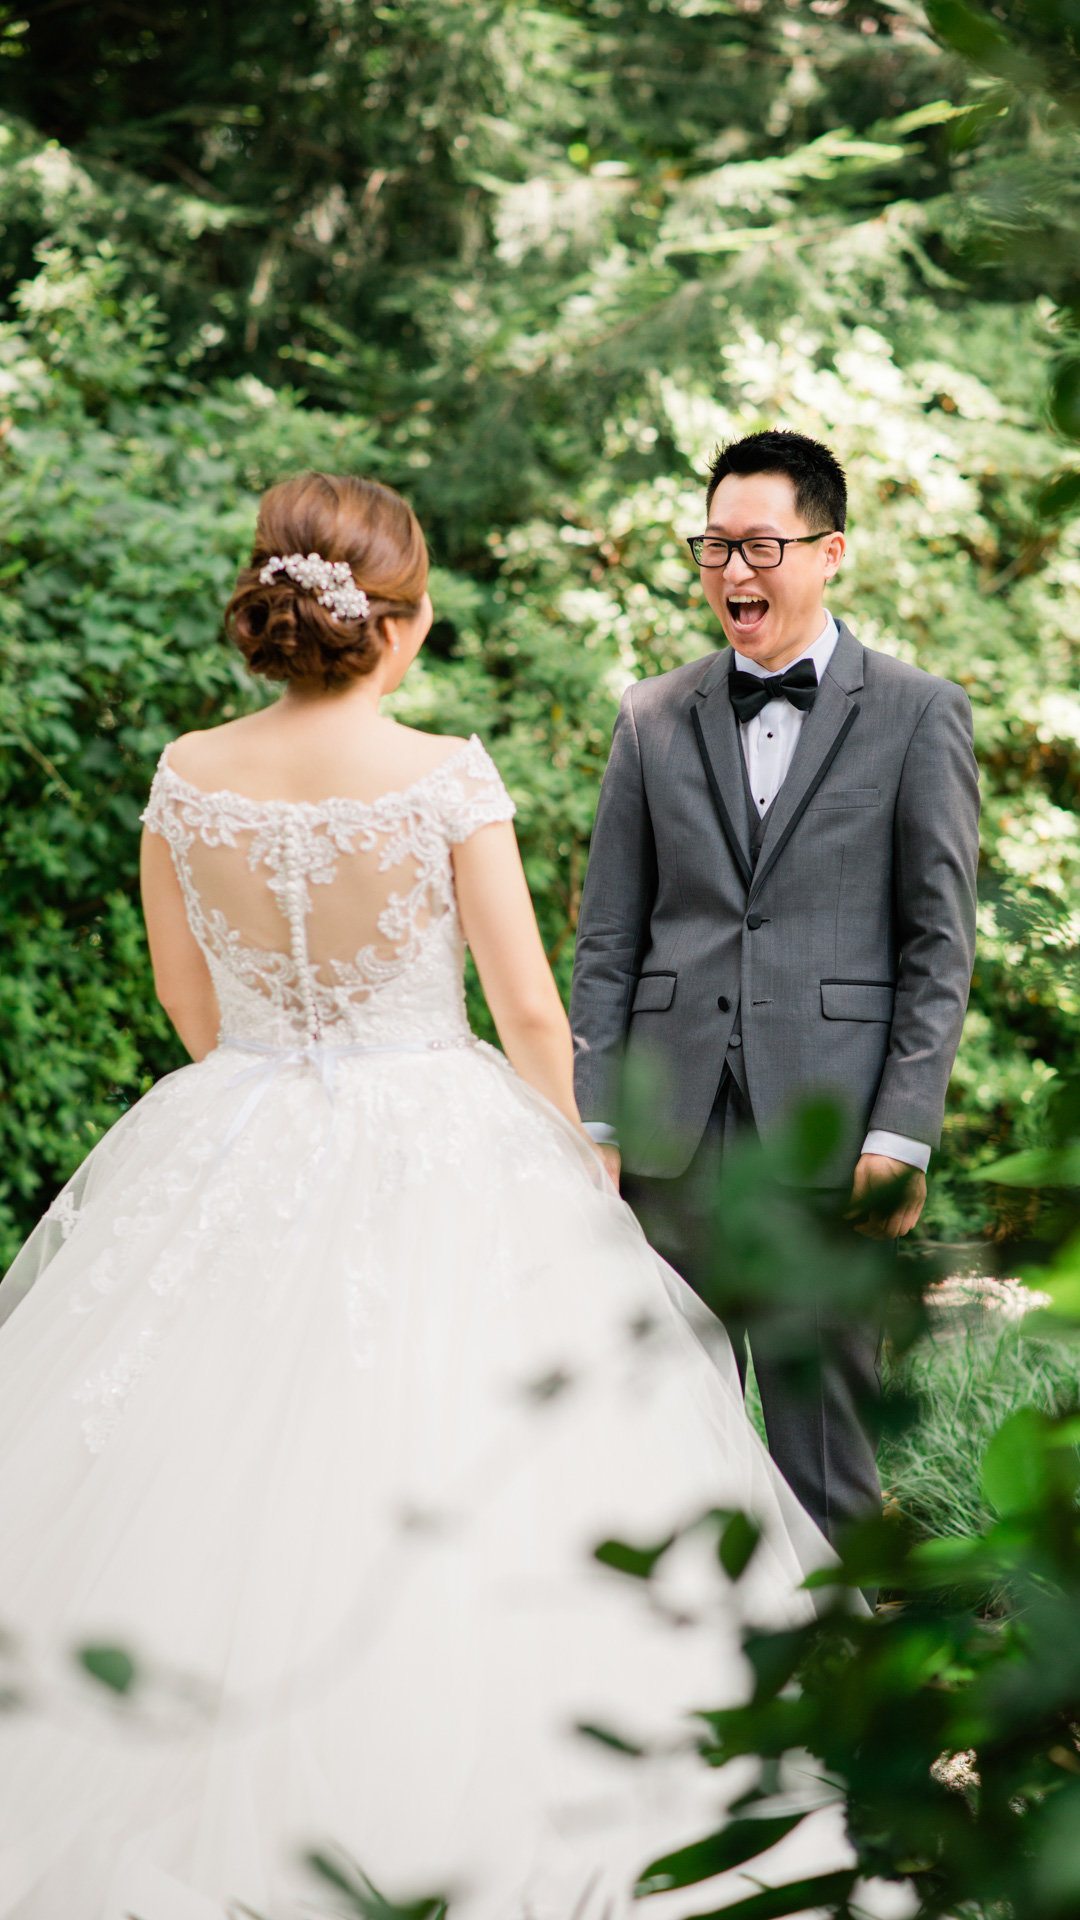 An emotional groom gasps at his bride during their first look